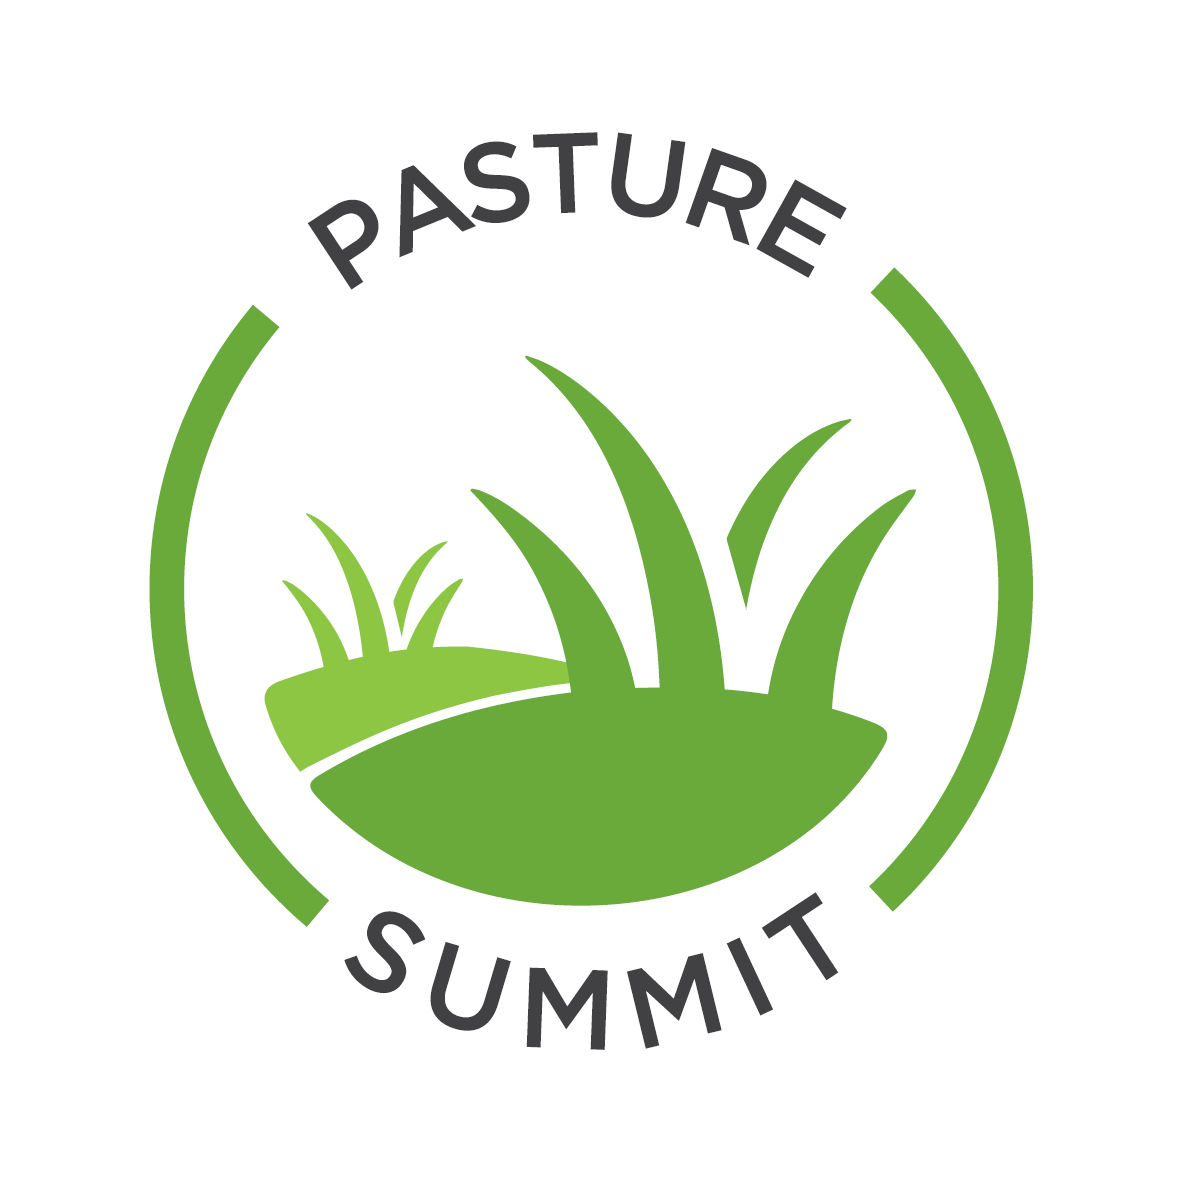 Pasture Summit South Island Spring Event